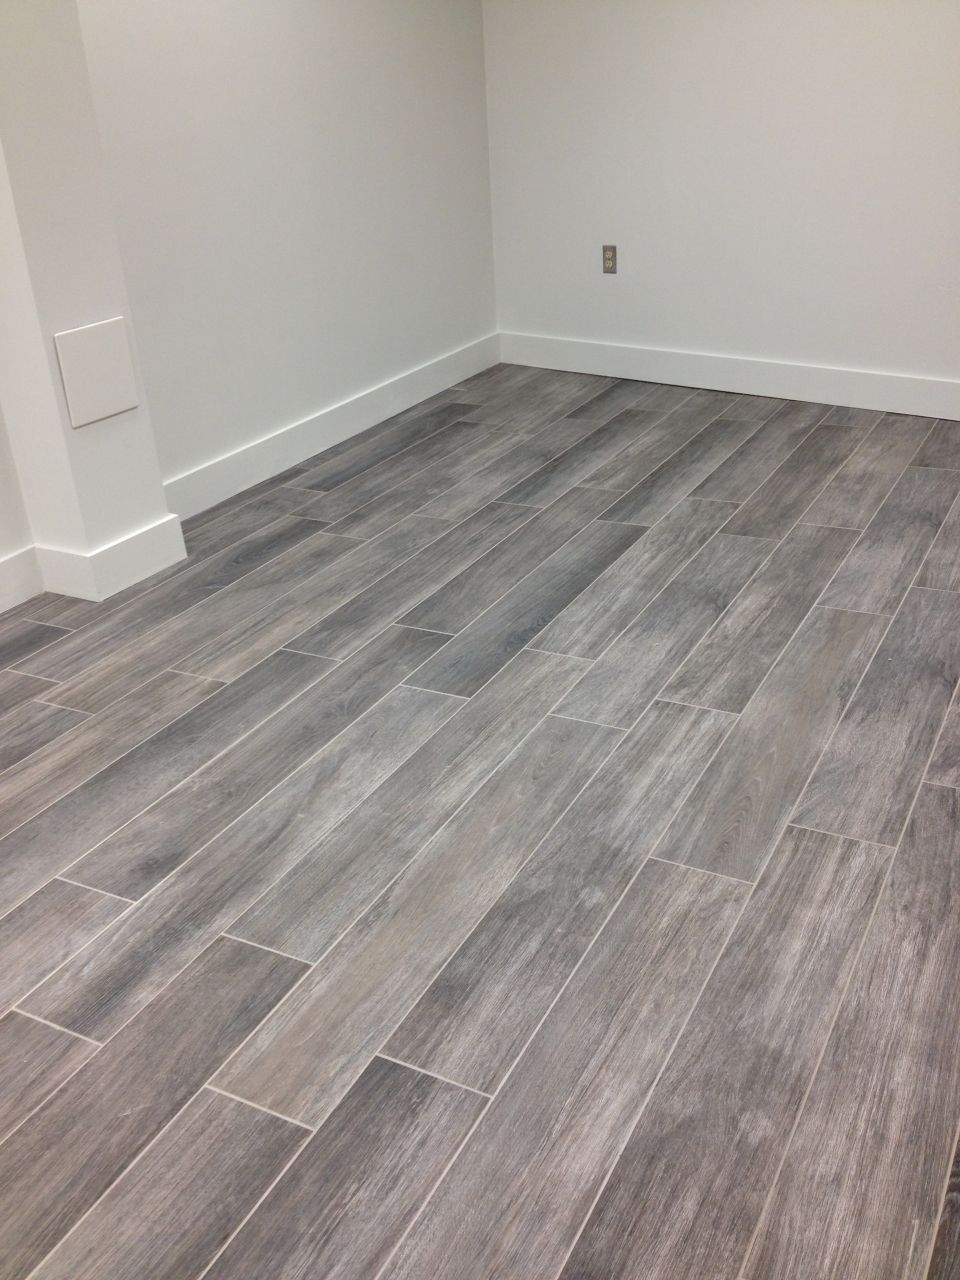 Gray wood tile floor no3lcd6n8 homes pinterest wood tile gray wood tile floor no3lcd6n8 dailygadgetfo Choice Image